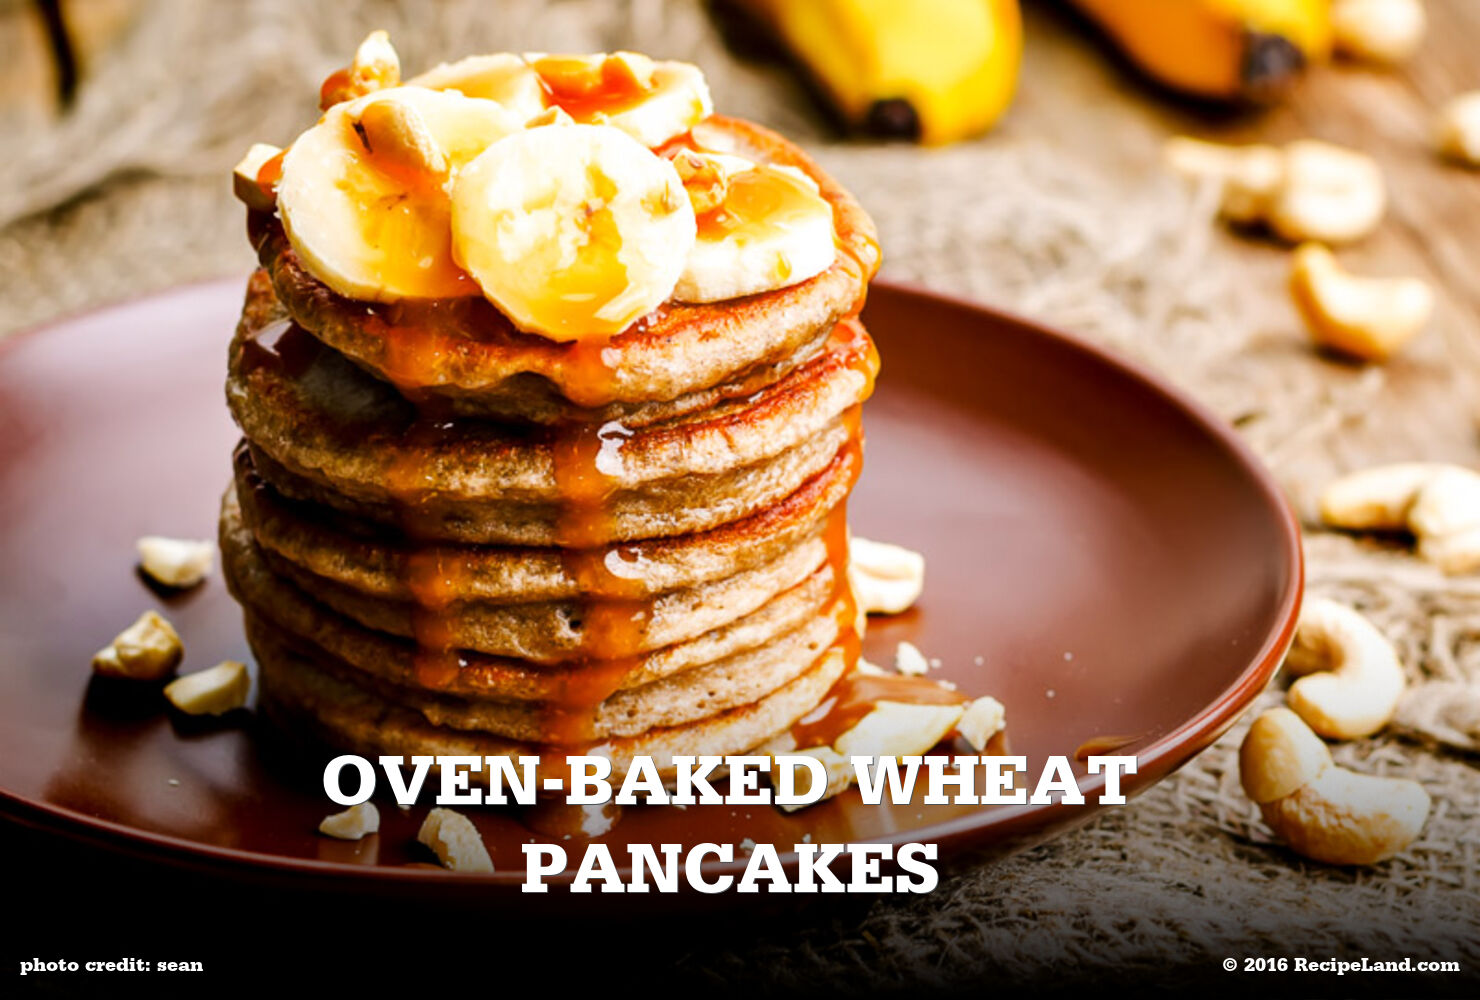 Oven-Baked Wheat Pancakes